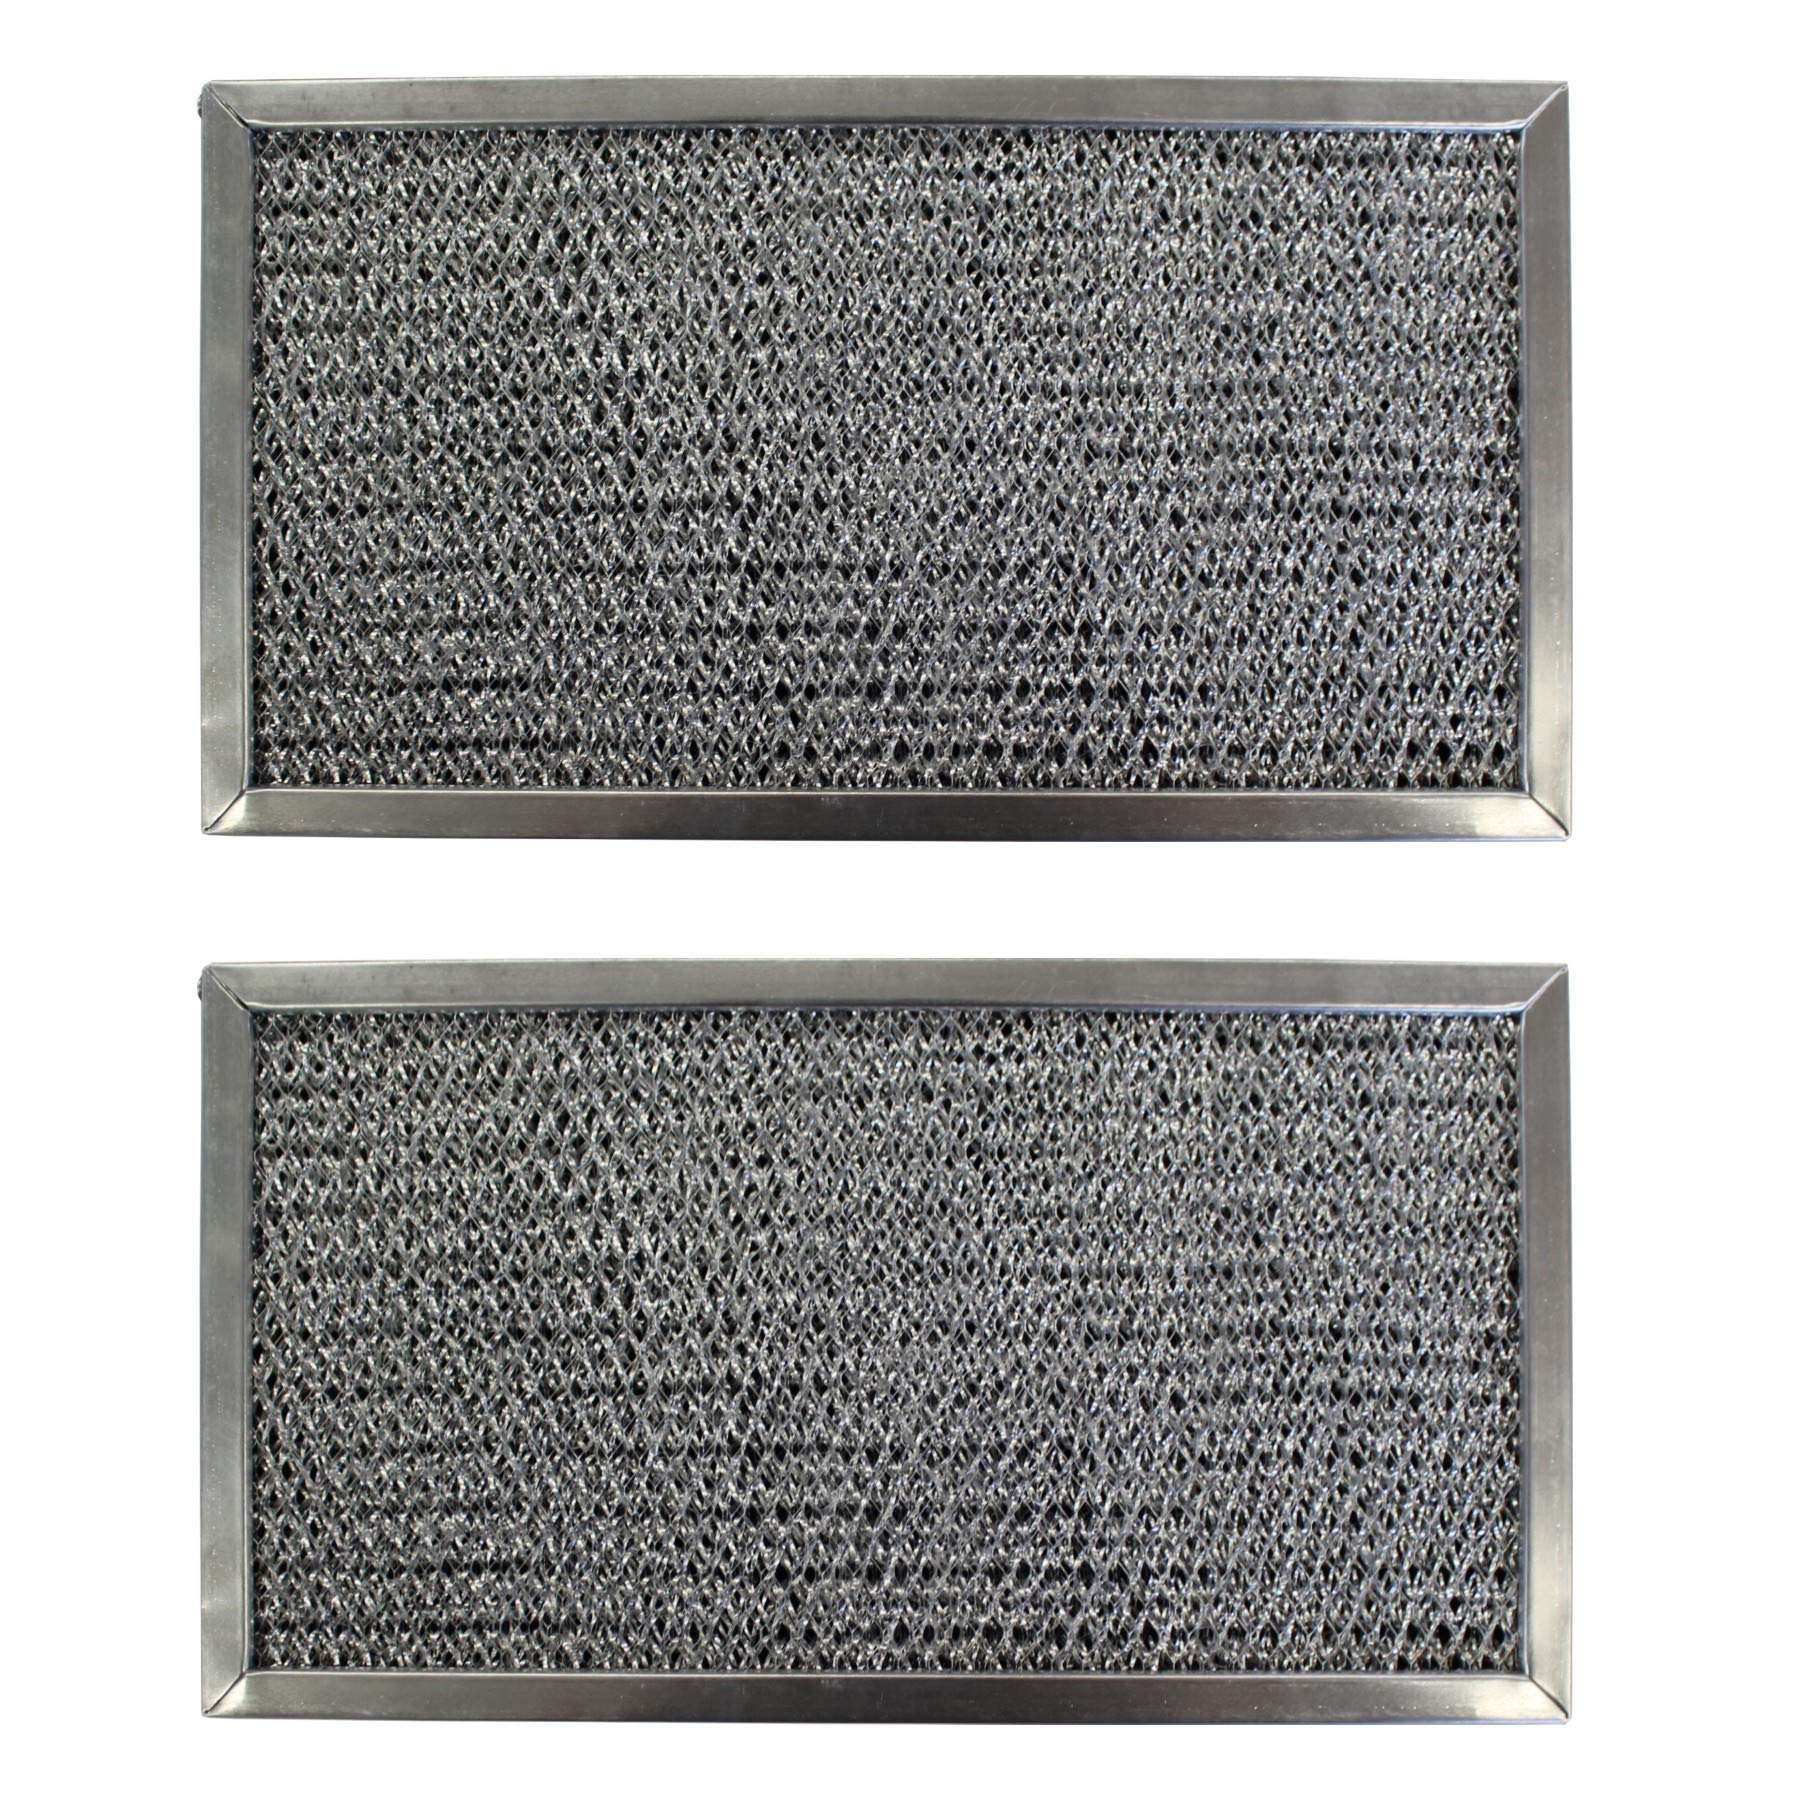 Replacement Aluminum Filters Compatible with Estate 8184002, GE WB02X9883, GE WB06X379, GE WB2X9883,